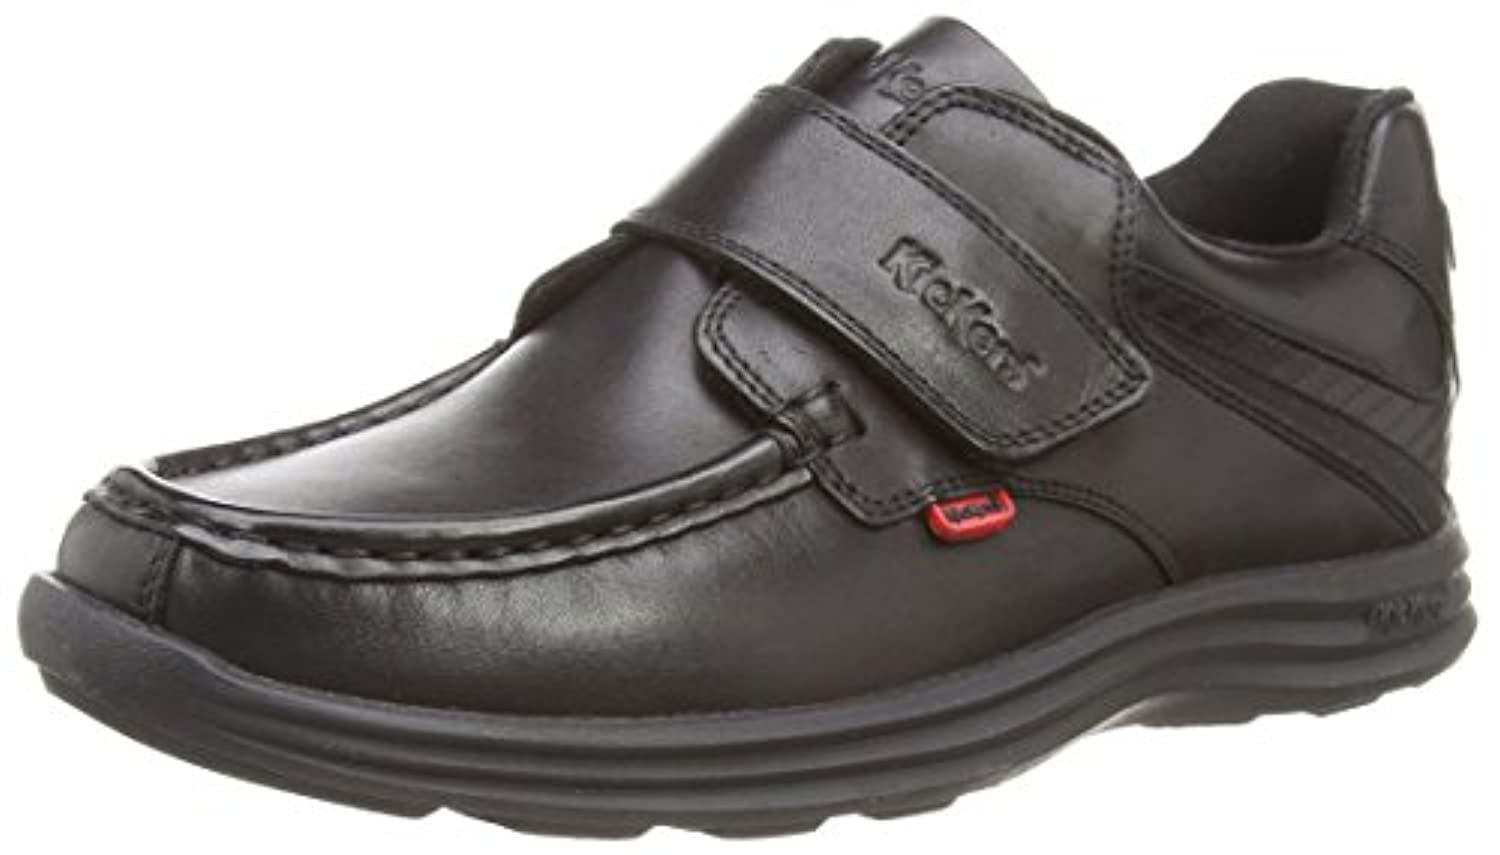 Kickers Boy's Reasan Strap Loafers - Black, 3 UK Child